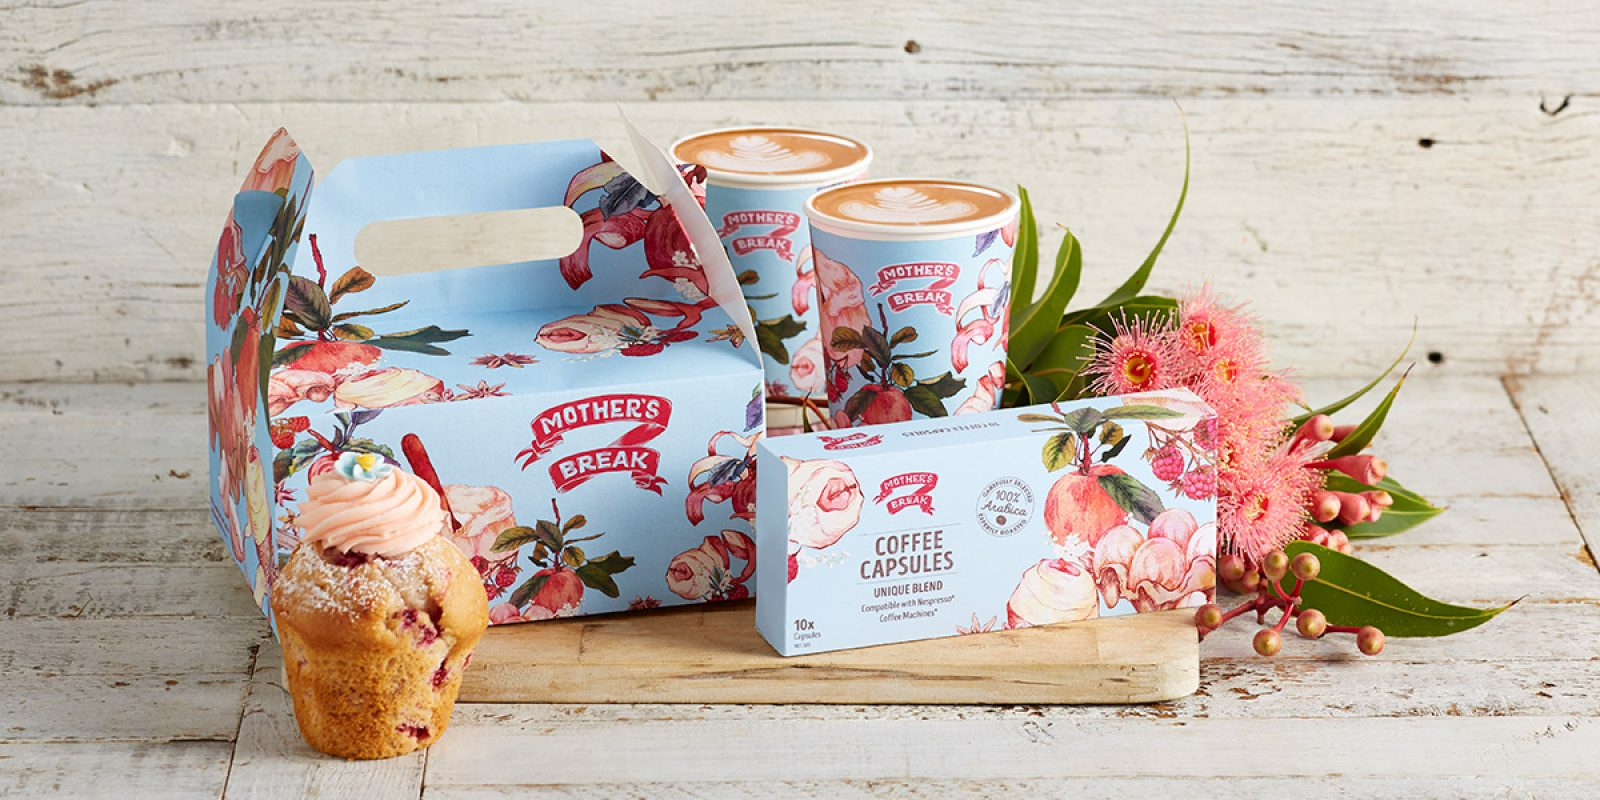 Festive packaging: we create masterpieces with our own hands 52